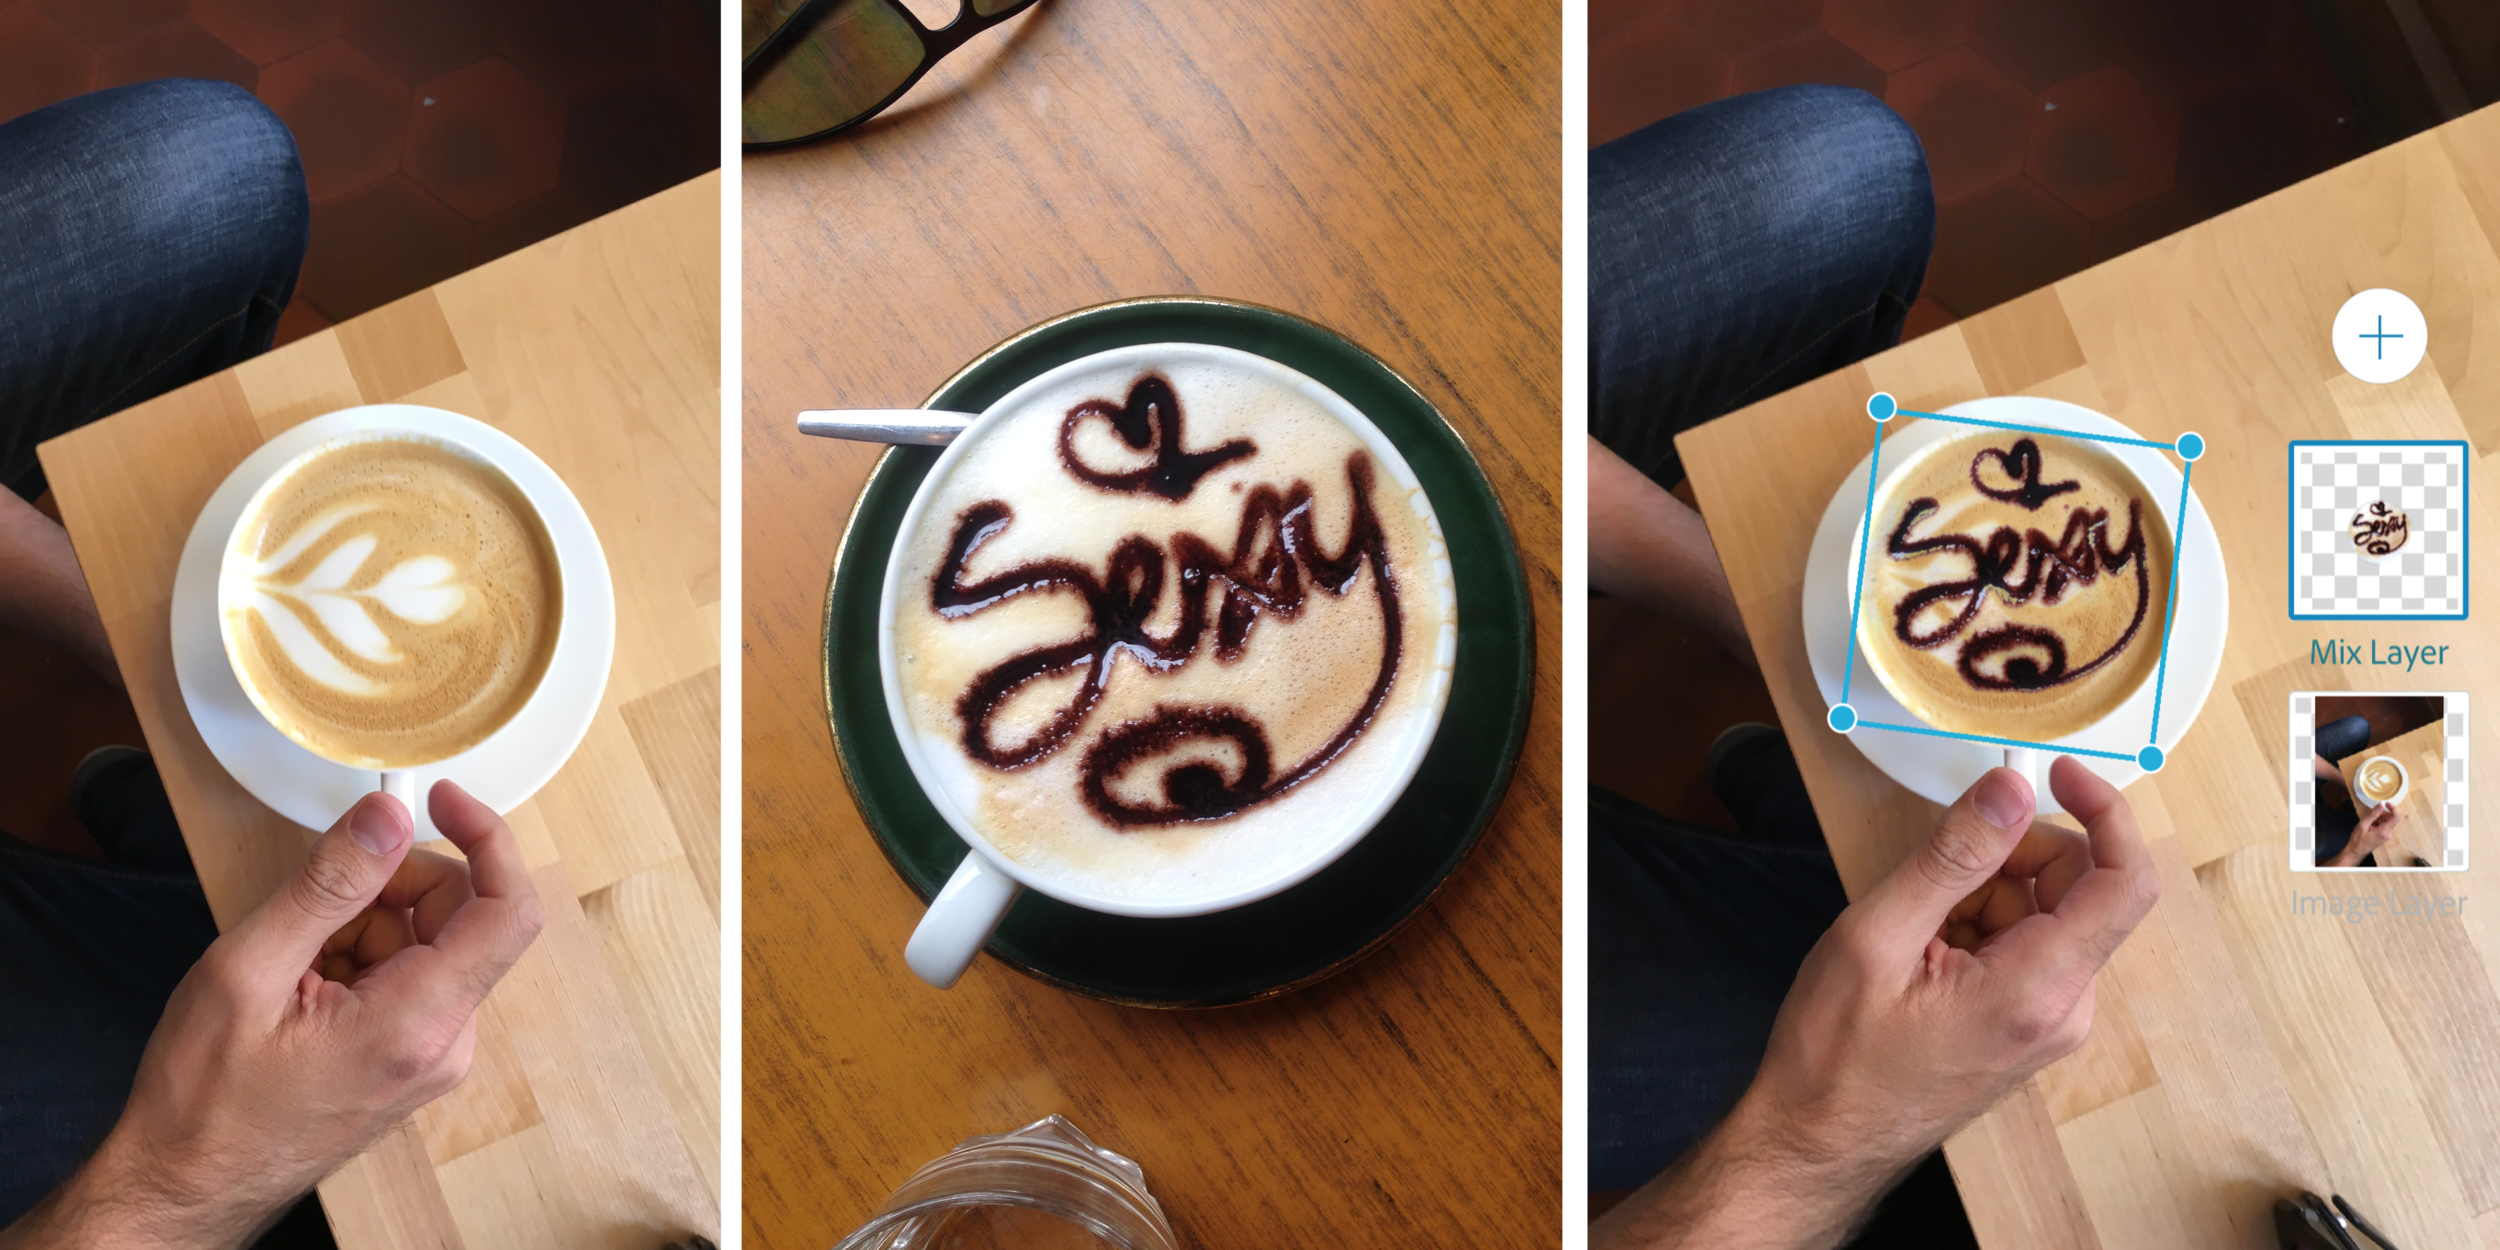 Adding latte art via Photoshop Mix